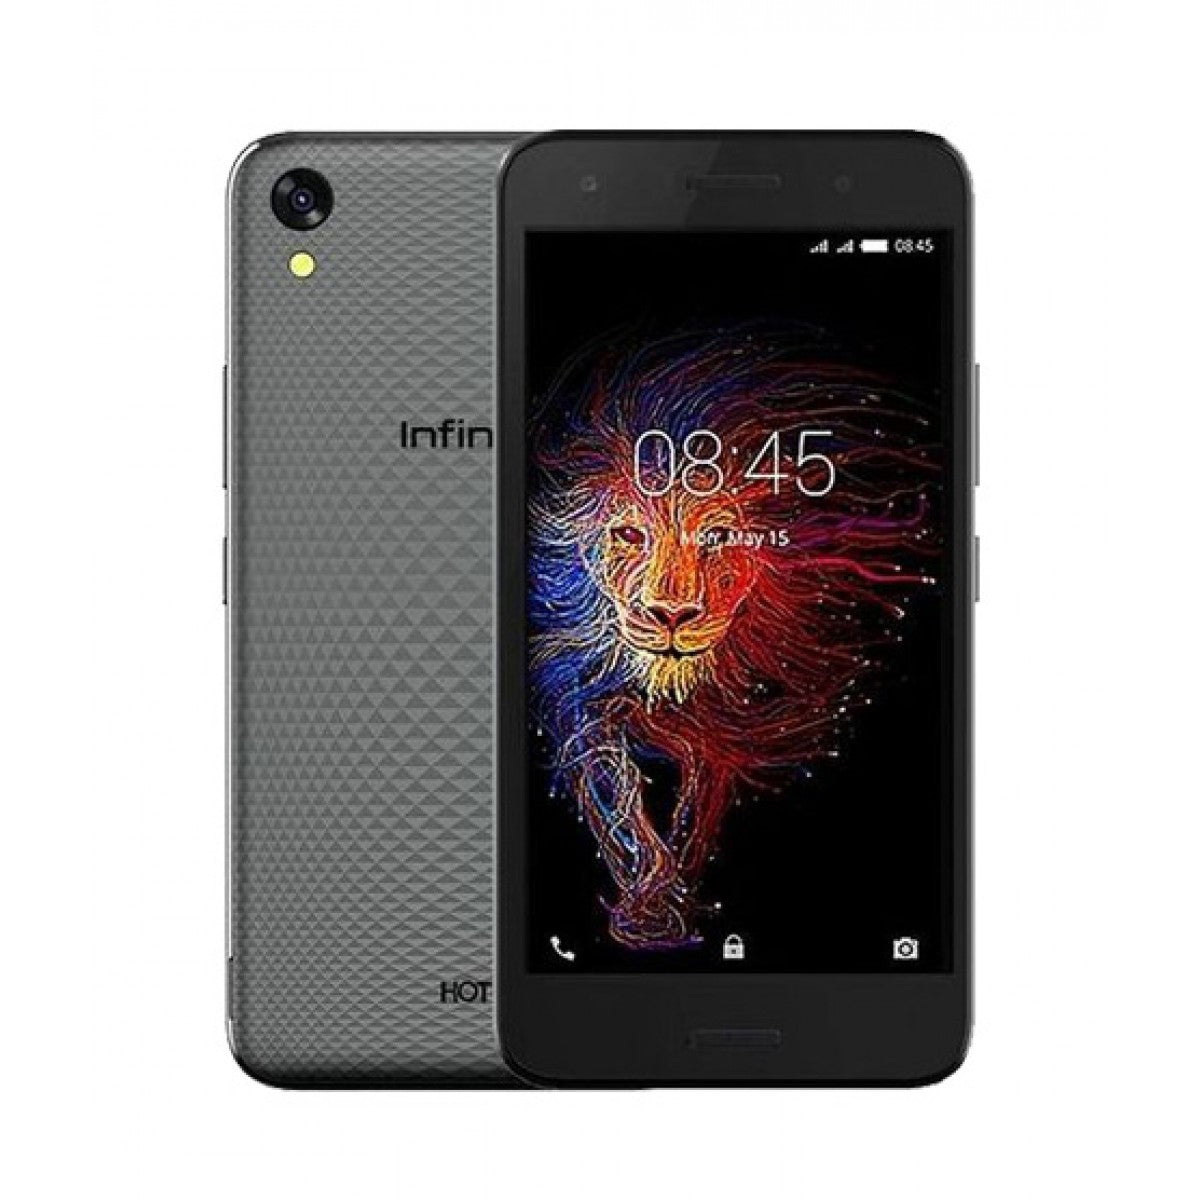 Infinix Infinix Hot 5 With Fingerprint Sensor - Dual Sim - 16gb, 1gb Ram - Dool-X IT Republic